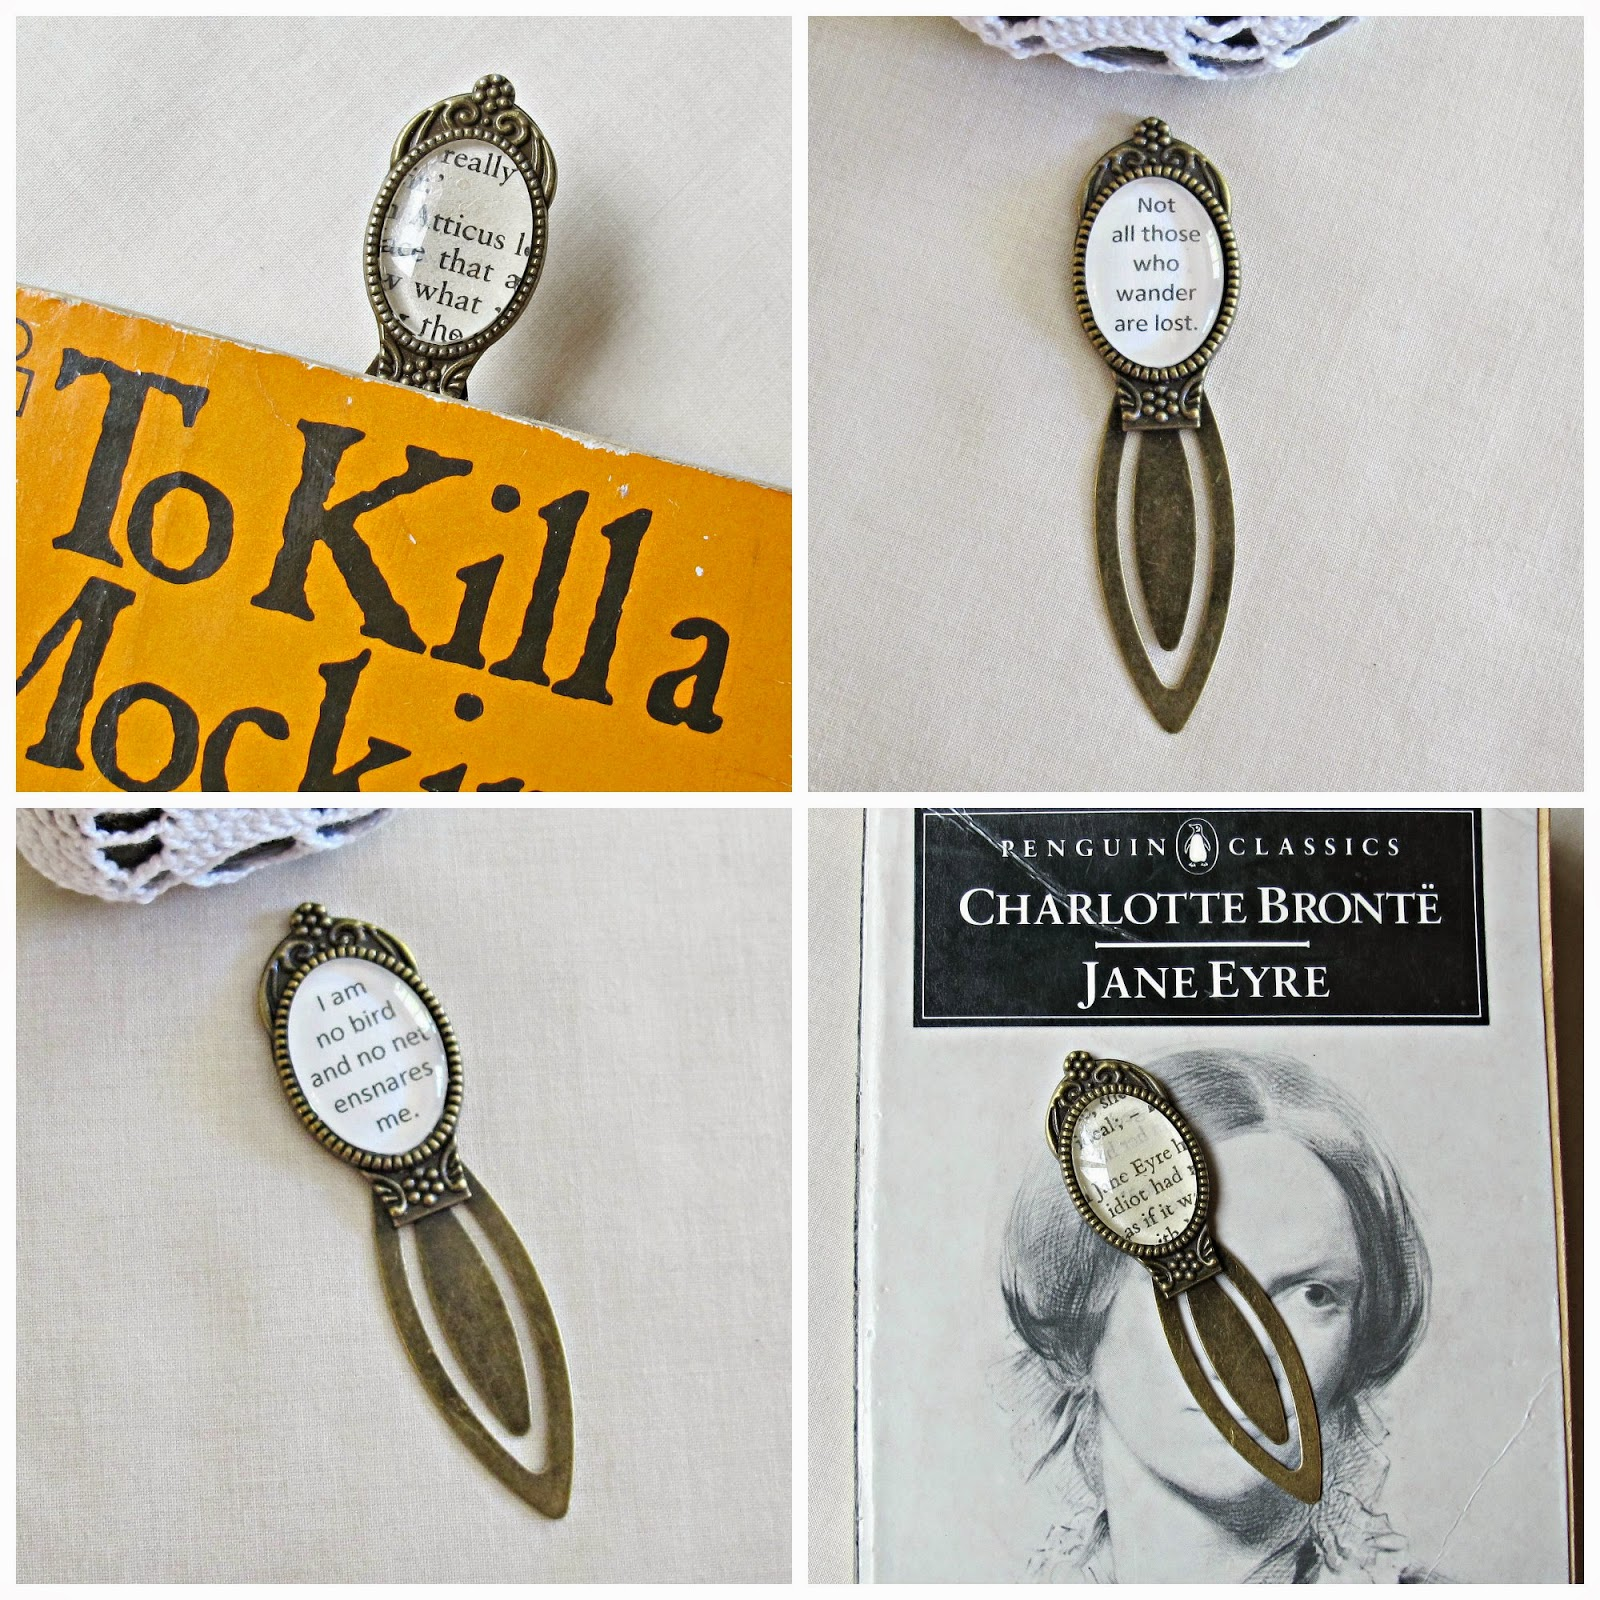 image domum vindemia bookmarks literature literary to kill a mockingbird jane eyre